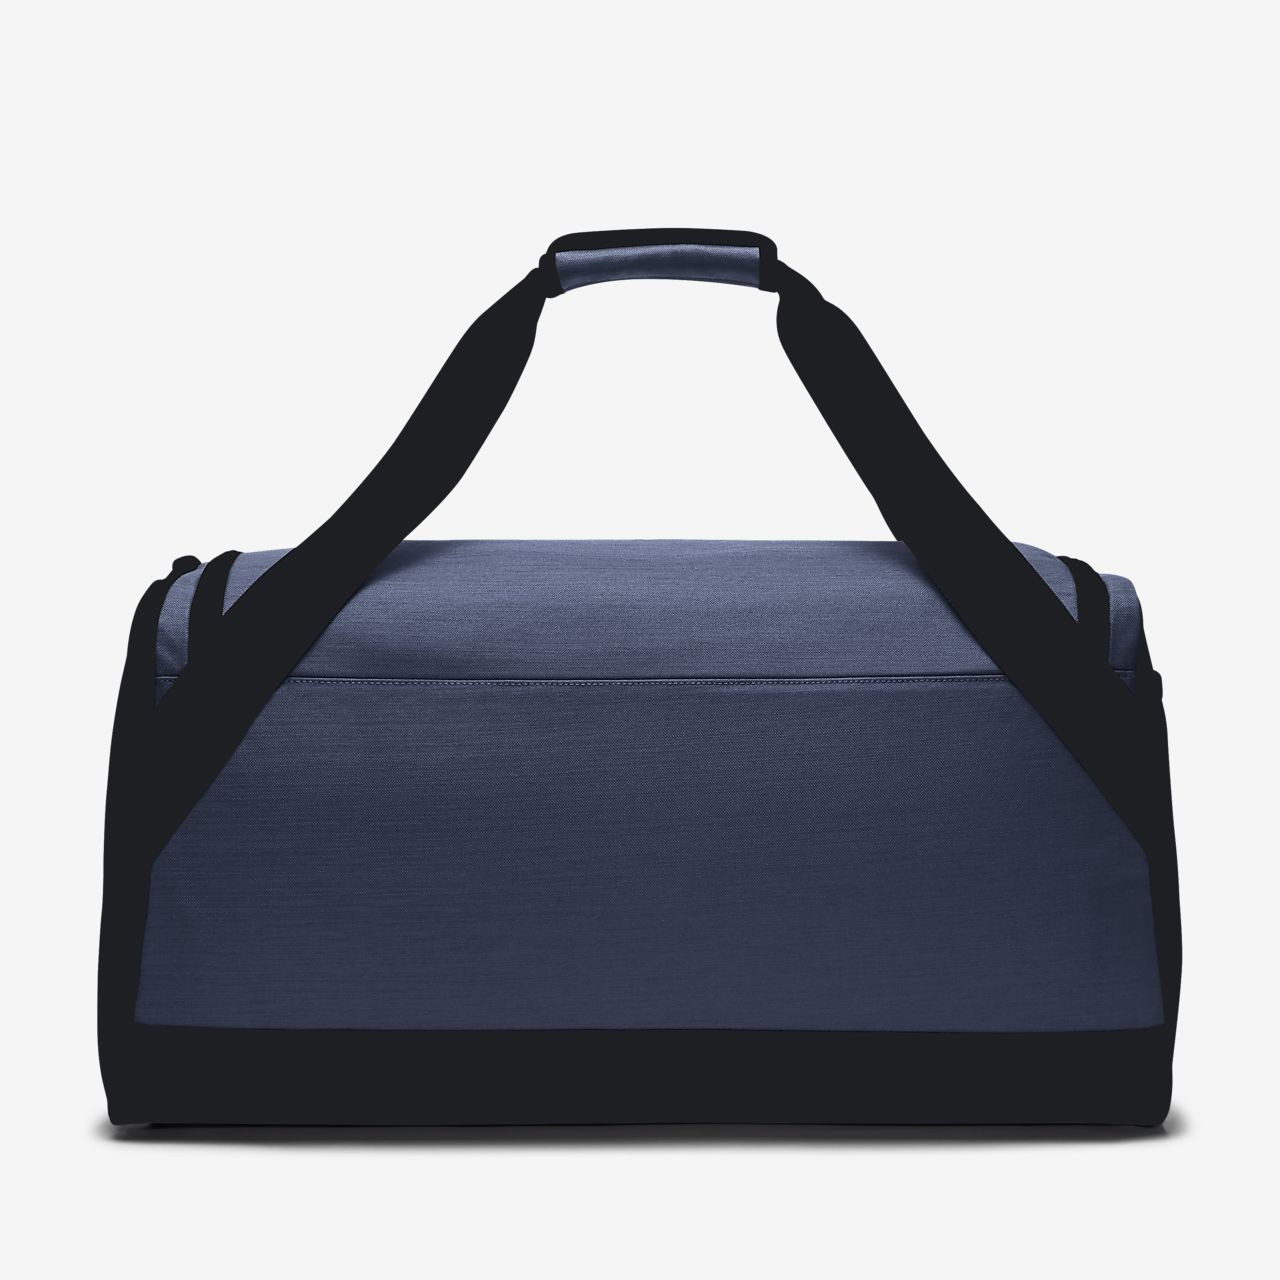 9408c9686f46 nike leather bag cheap   OFF41% The Largest Catalog Discounts